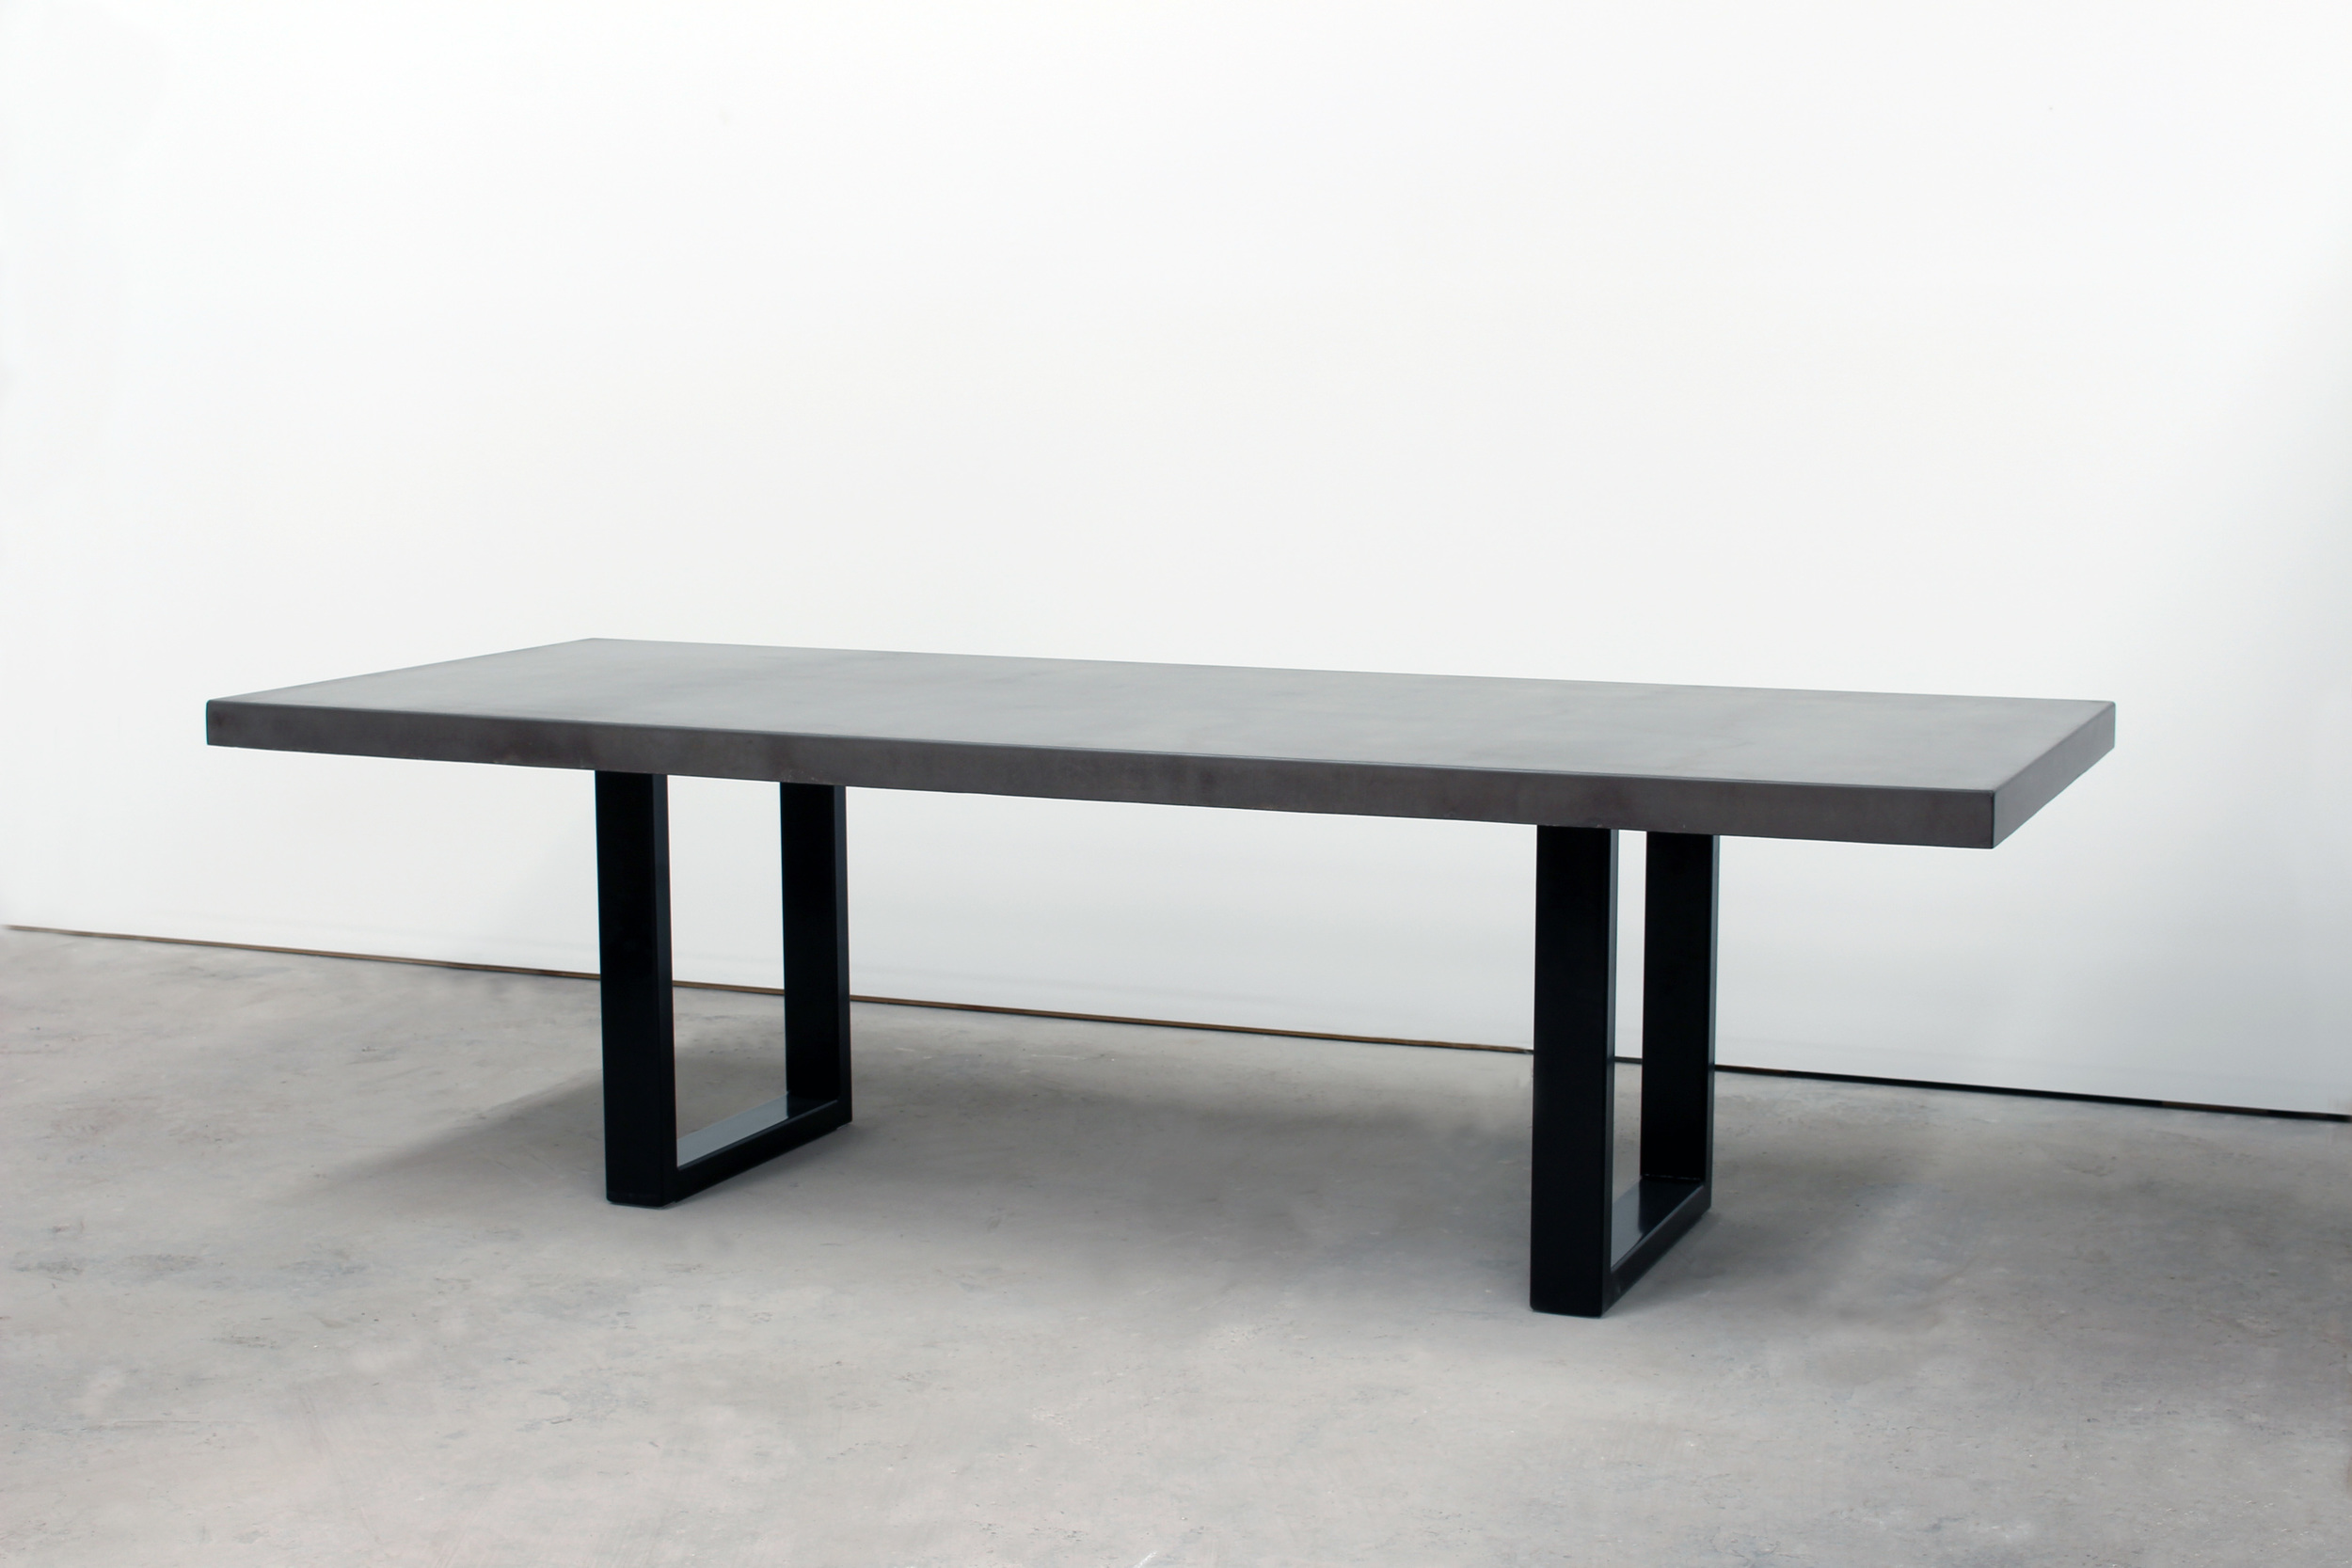 Uuno Concrete Dining Table - 12 Seat